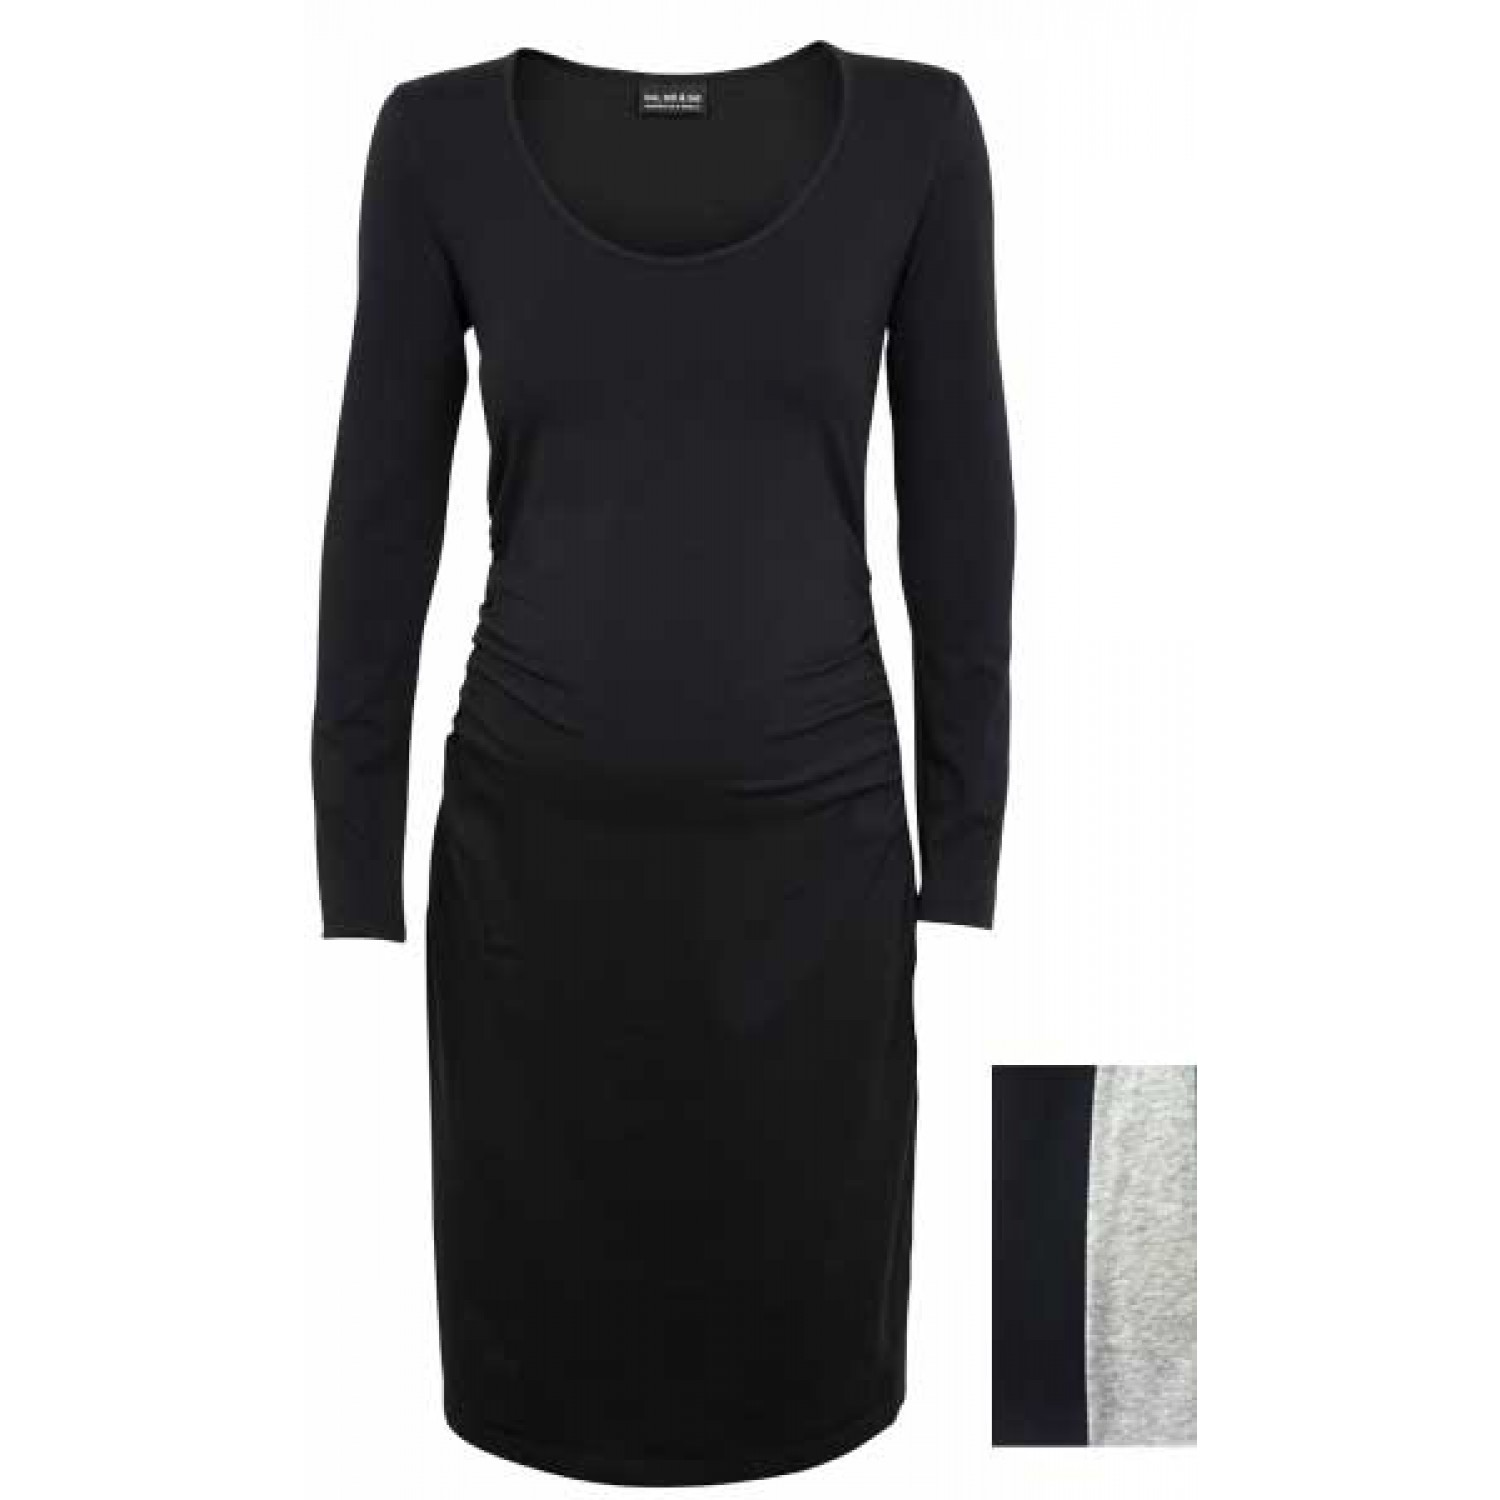 Maternity Dress of Organic Cotton for office & leisure time